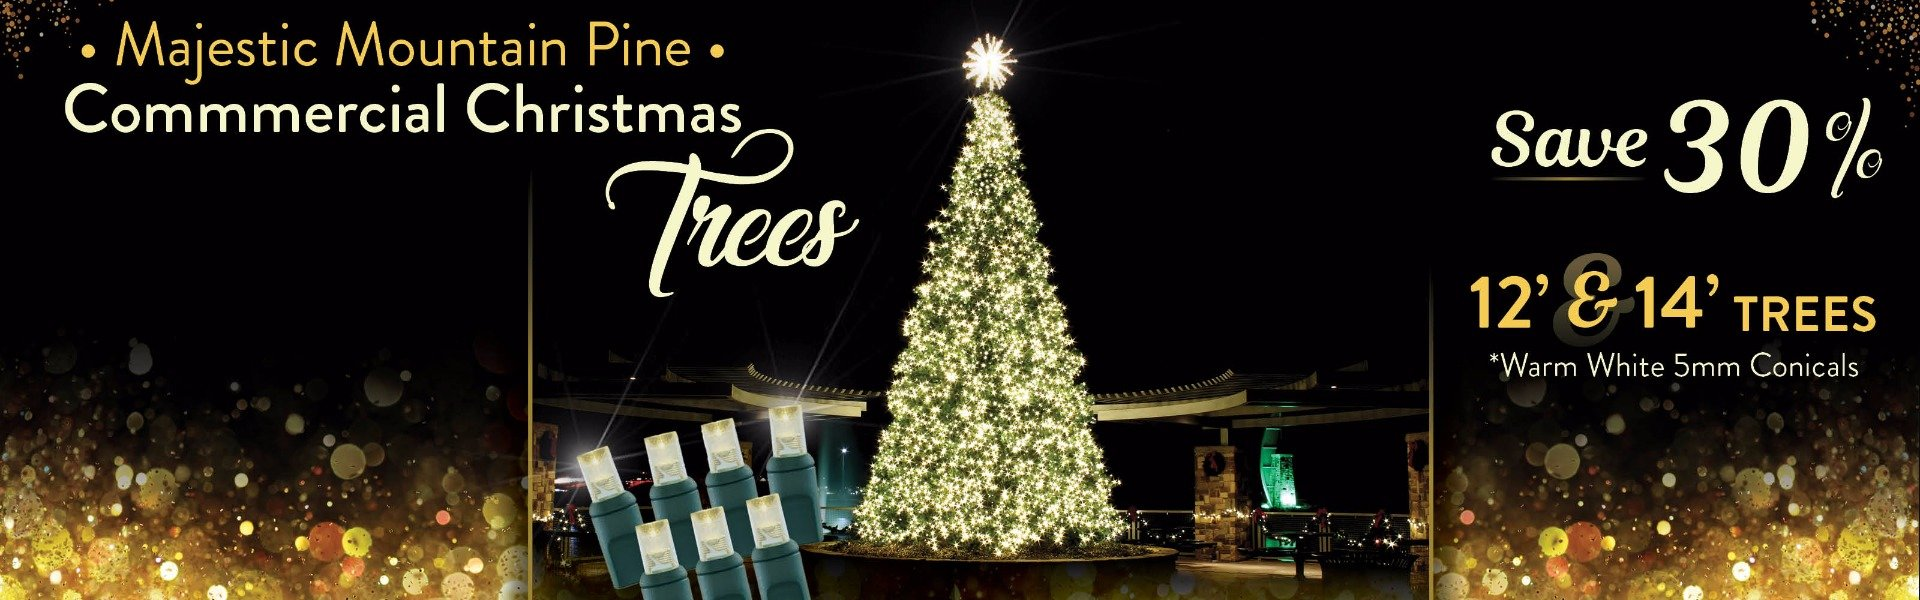 12 and 14 majestic mountain pine commercial christmas tree save 30 on warm - Christmas Light Tree